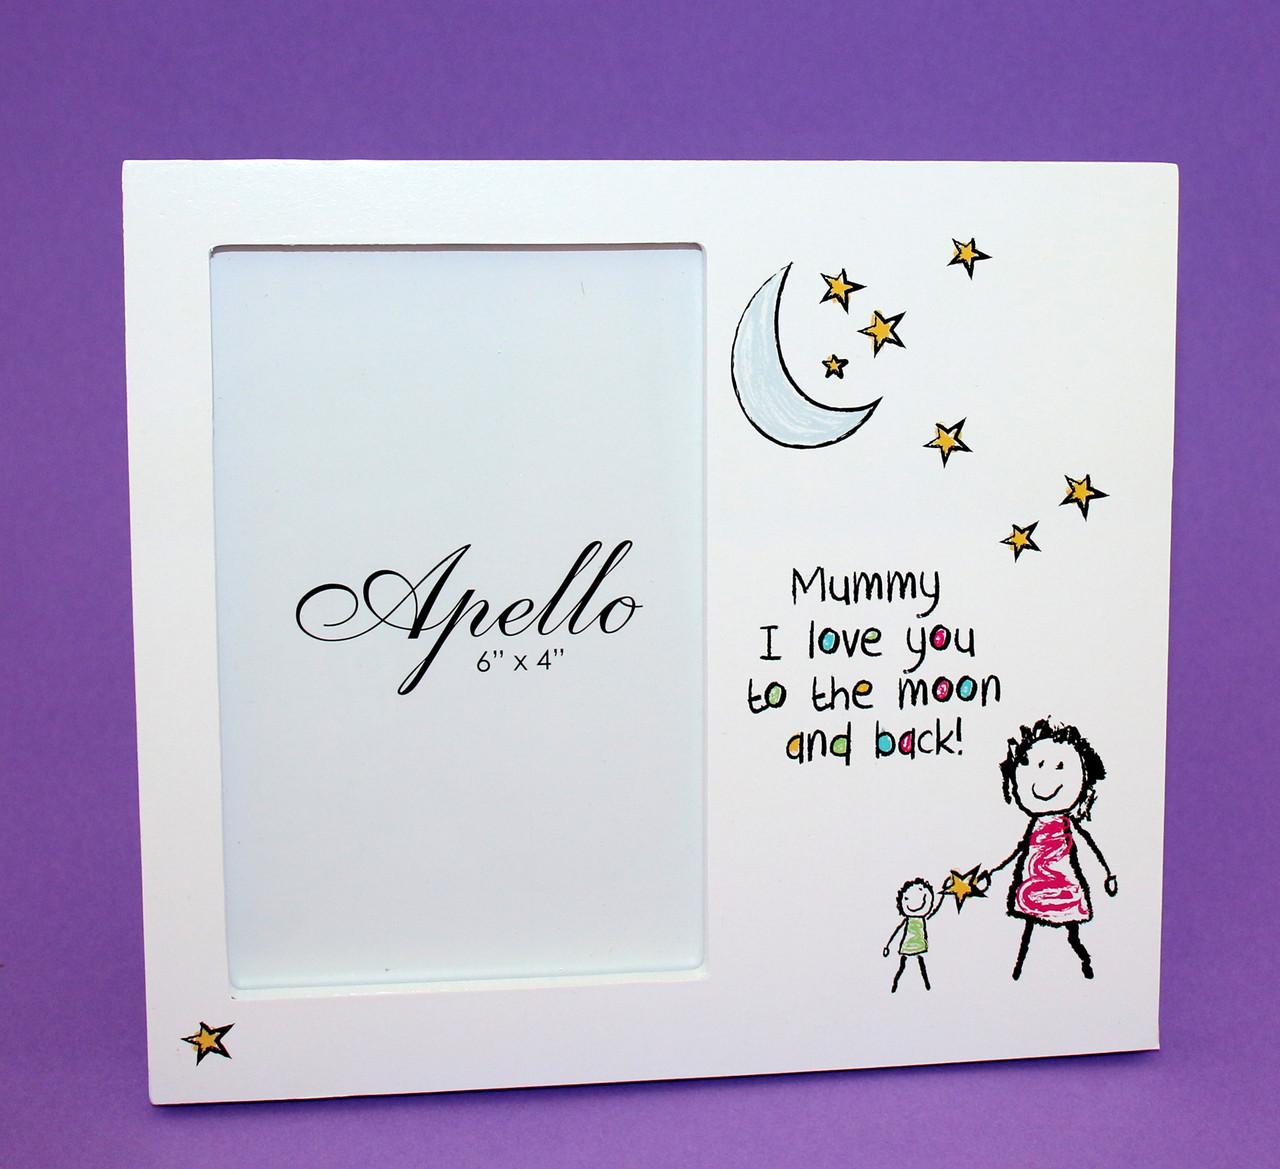 Mummy I Love You Photo Frame - Beautiful Frames & Gifts Store